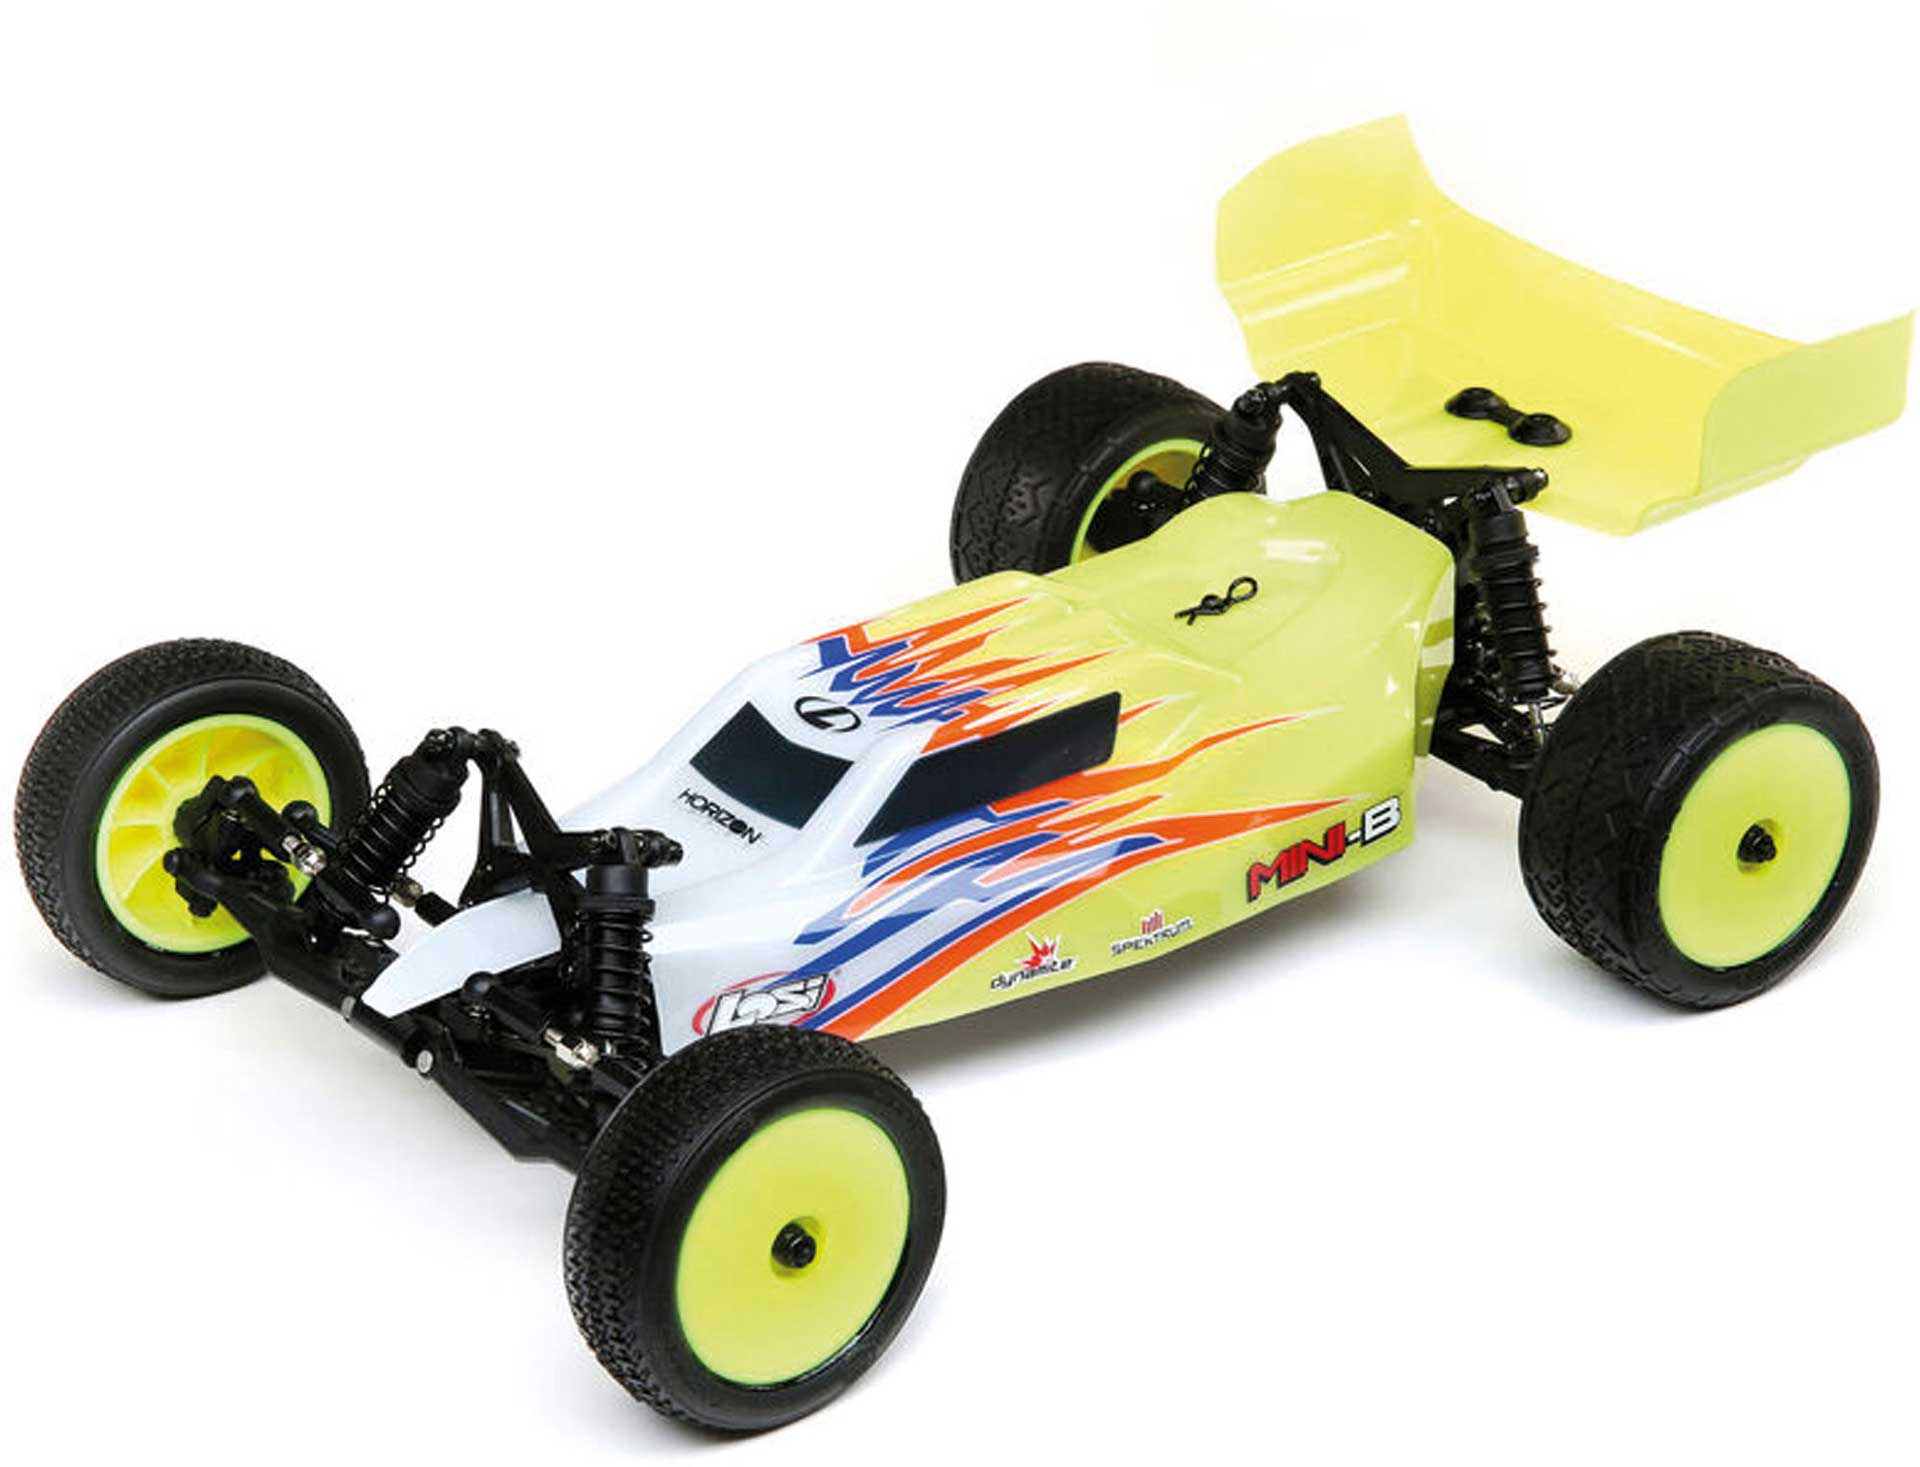 LOSI Mini-B Brushed RTR 1/16 2WD Buggy yellow/white